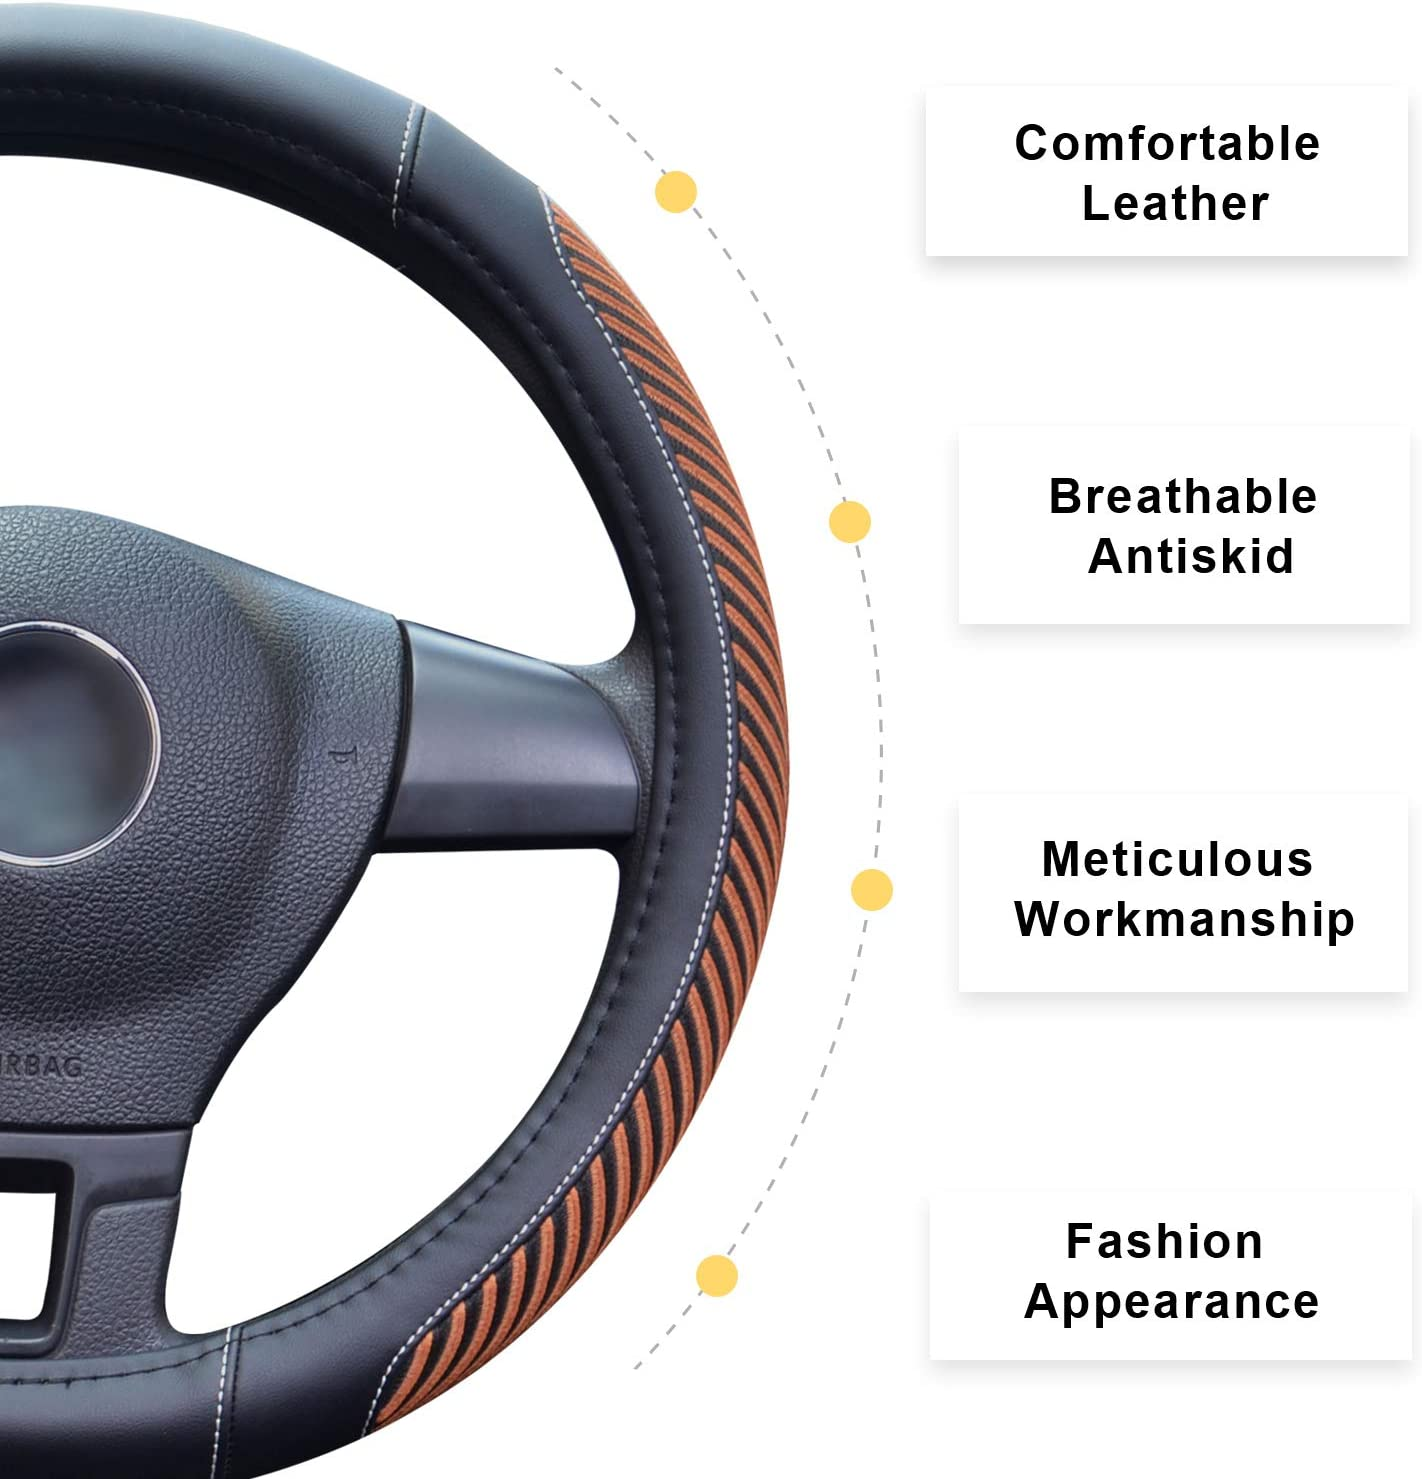 Odorless Warm in Winter Cool in Summer Gray BOKIN Steering Wheel Cover Microfiber Leather Viscose Universal 15 Inches Anti-Slip Breathable